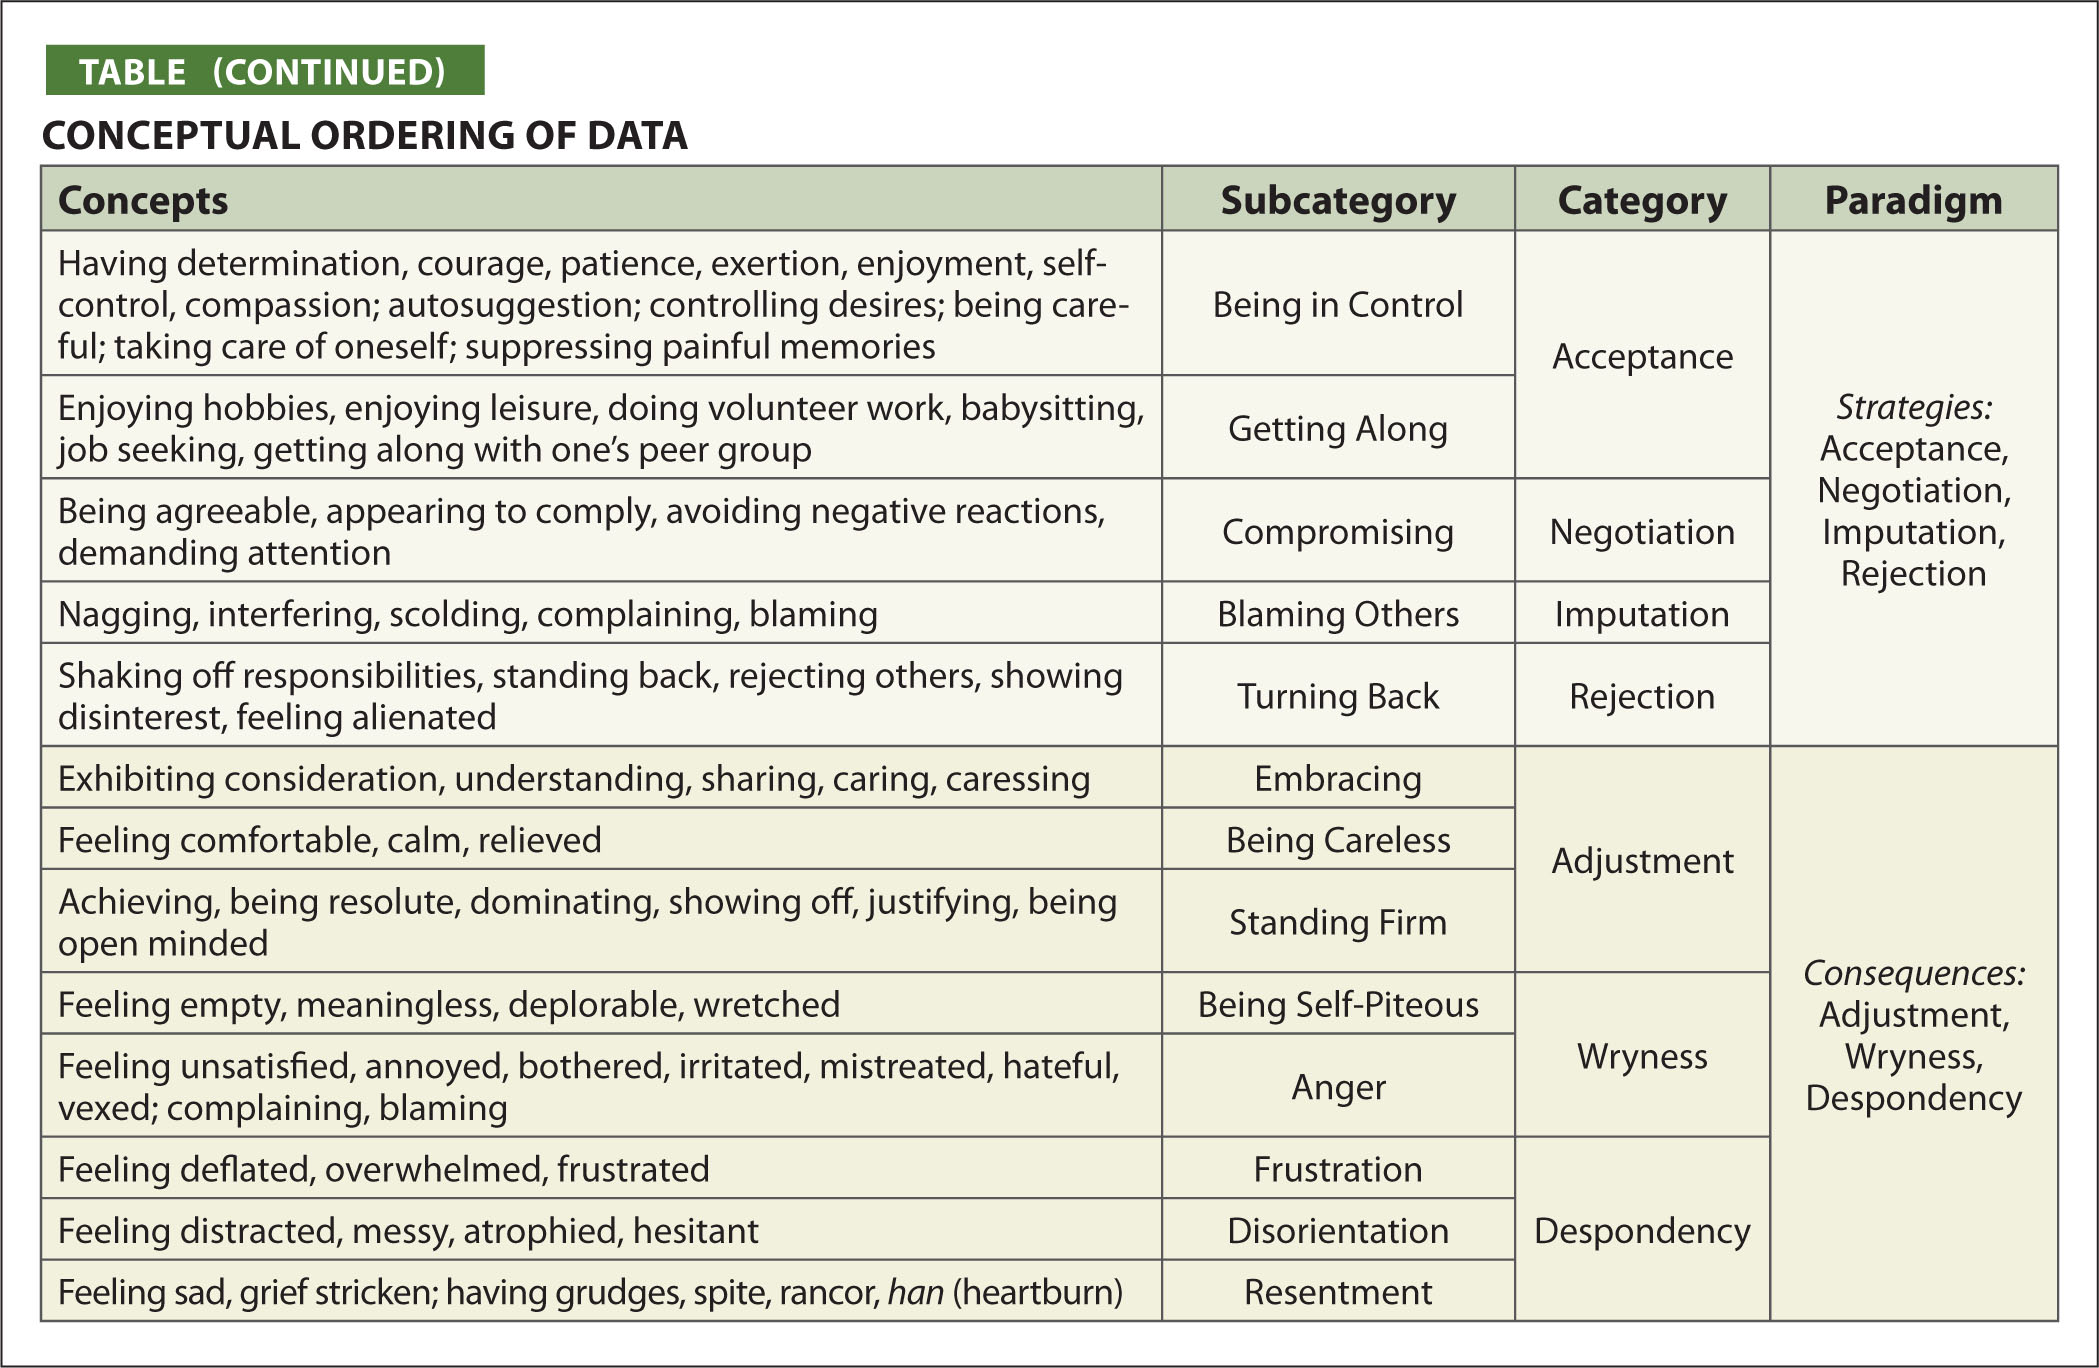 Conceptual Ordering of Data